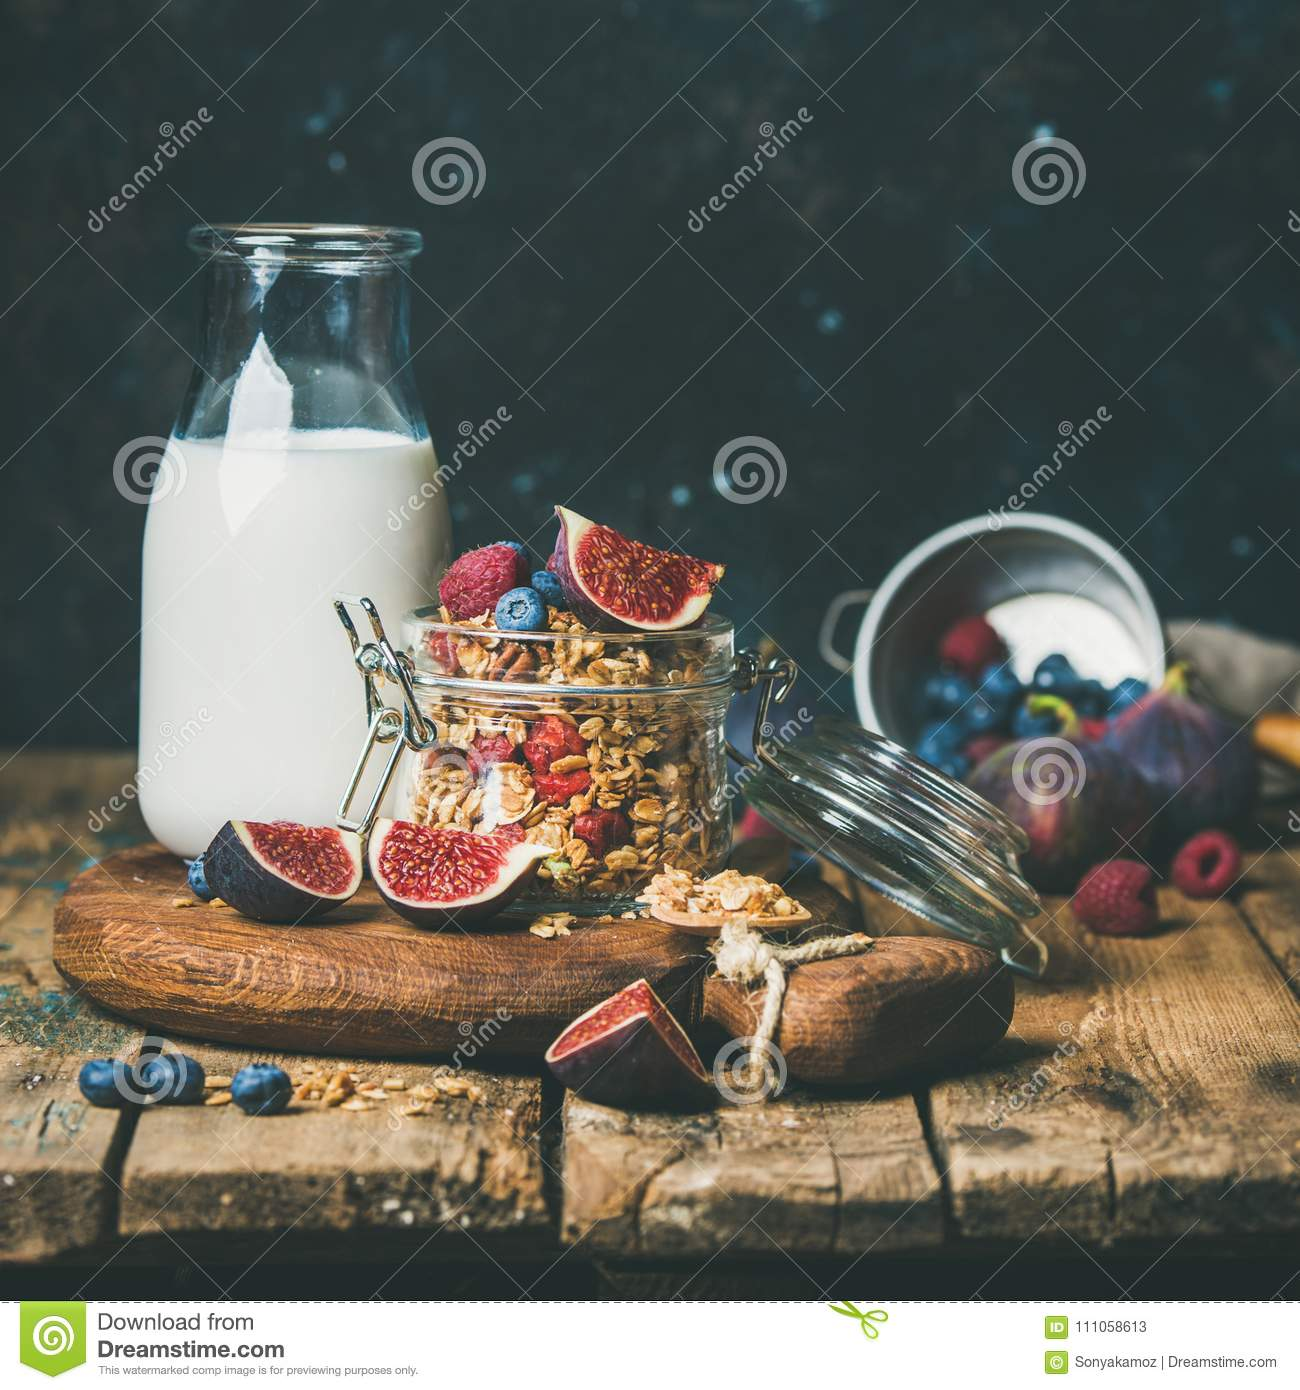 Healthy breakfast with Oatmeal granola and almond milk, square crop